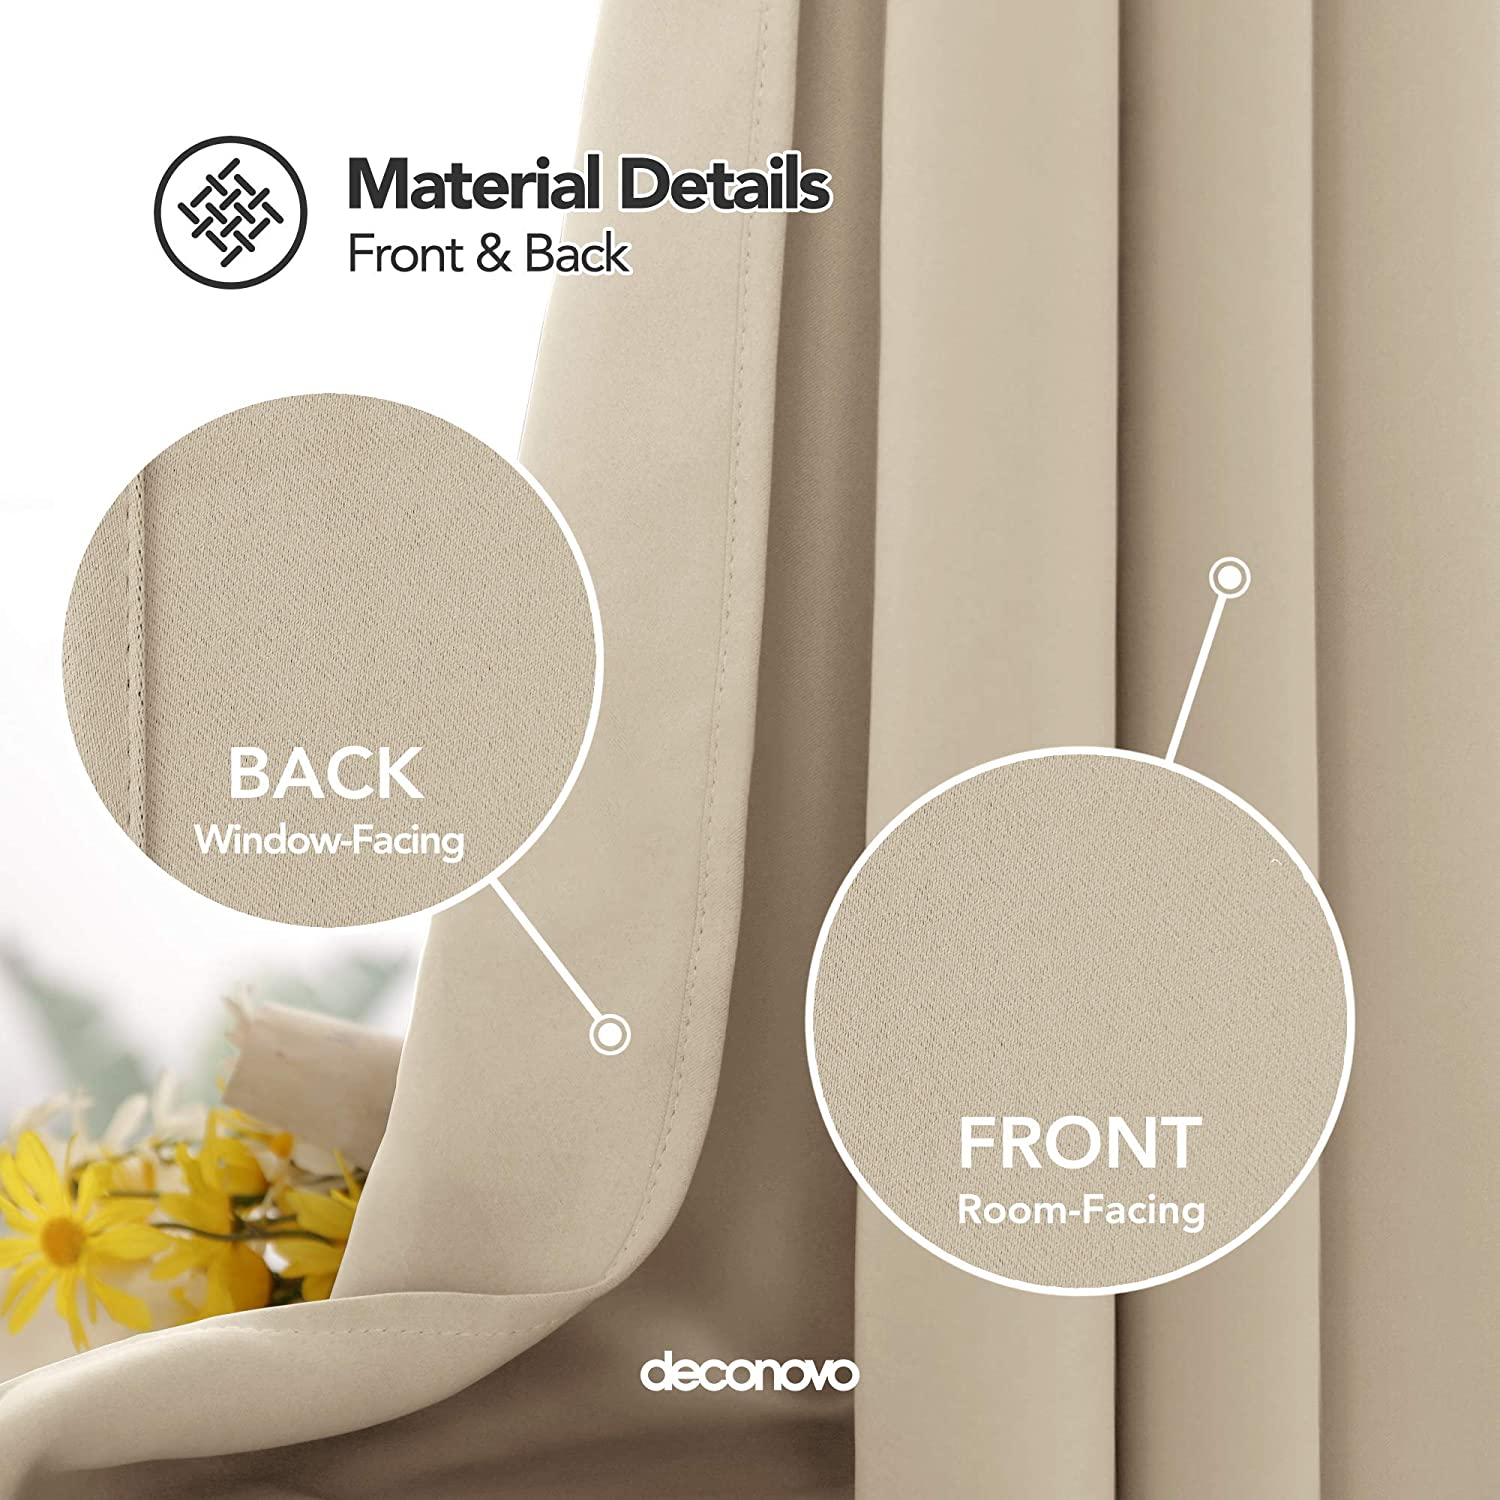 Deconovo Thermal Insulated Blackout Curtain Fabric Ring Top Eyelet Curtain for Bedroom Windows 52x 54 Baby Pink 1 PANEL